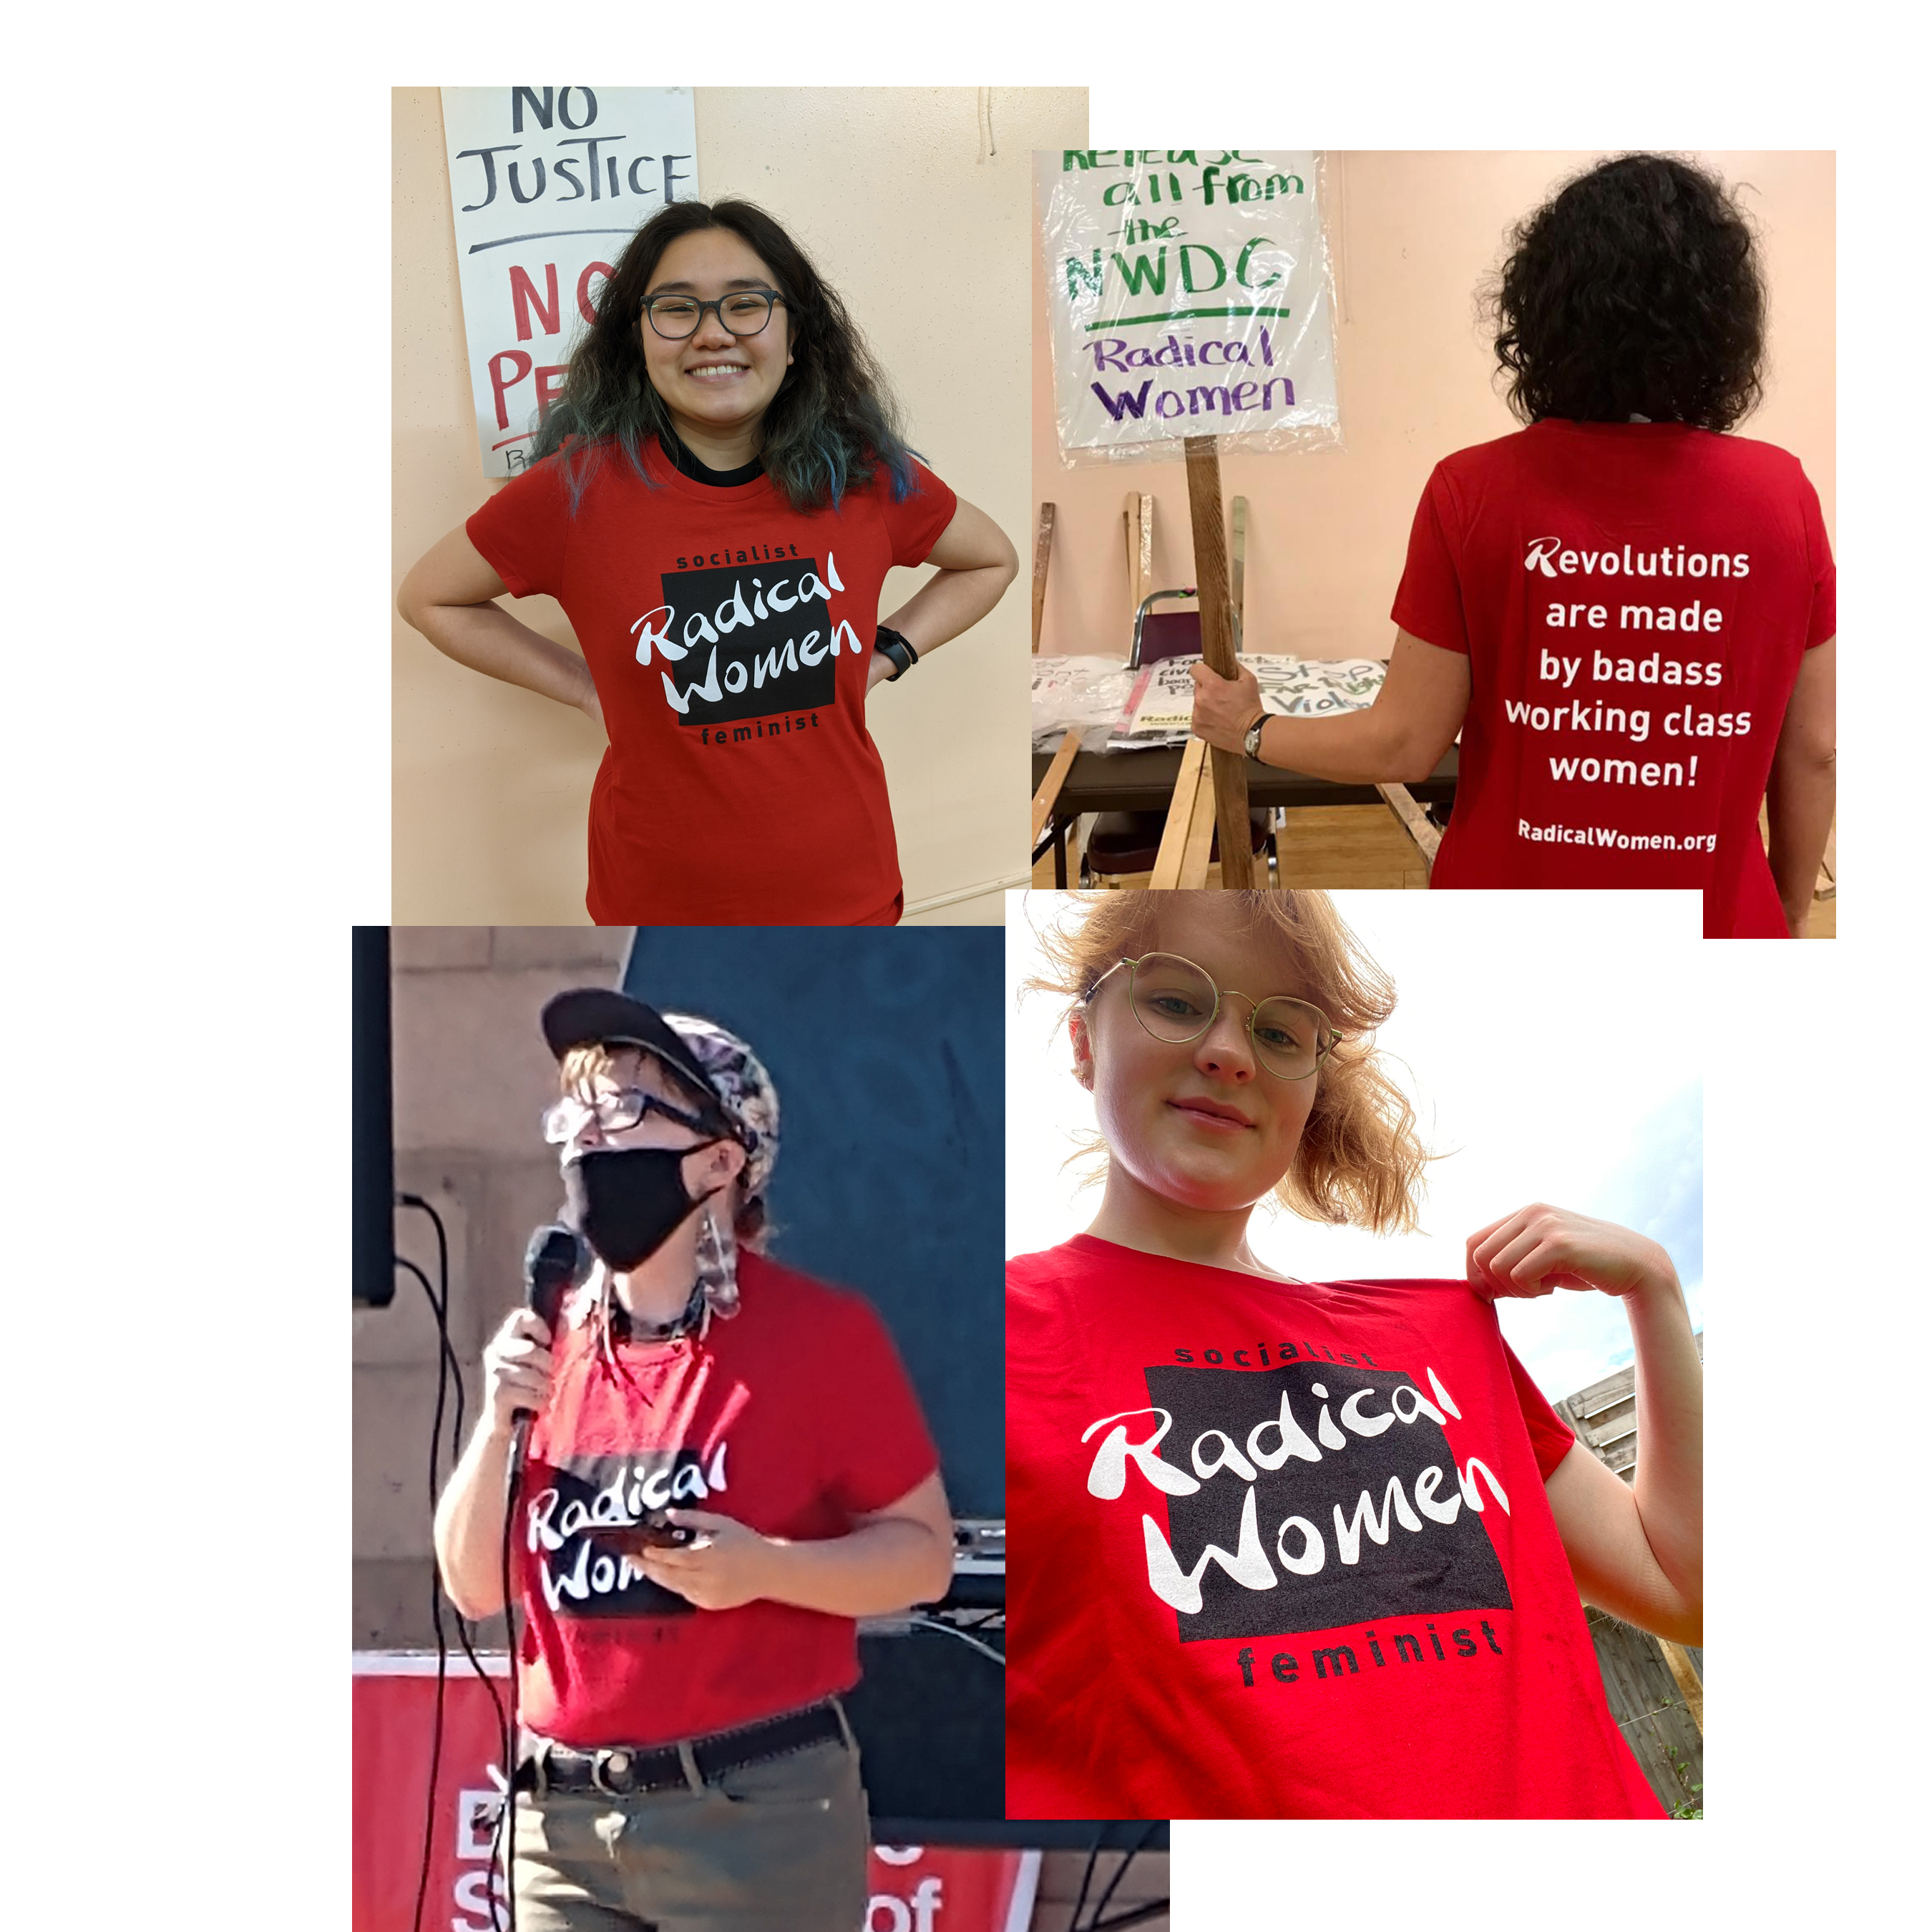 Women modeling the t-shirt sowing front and back views